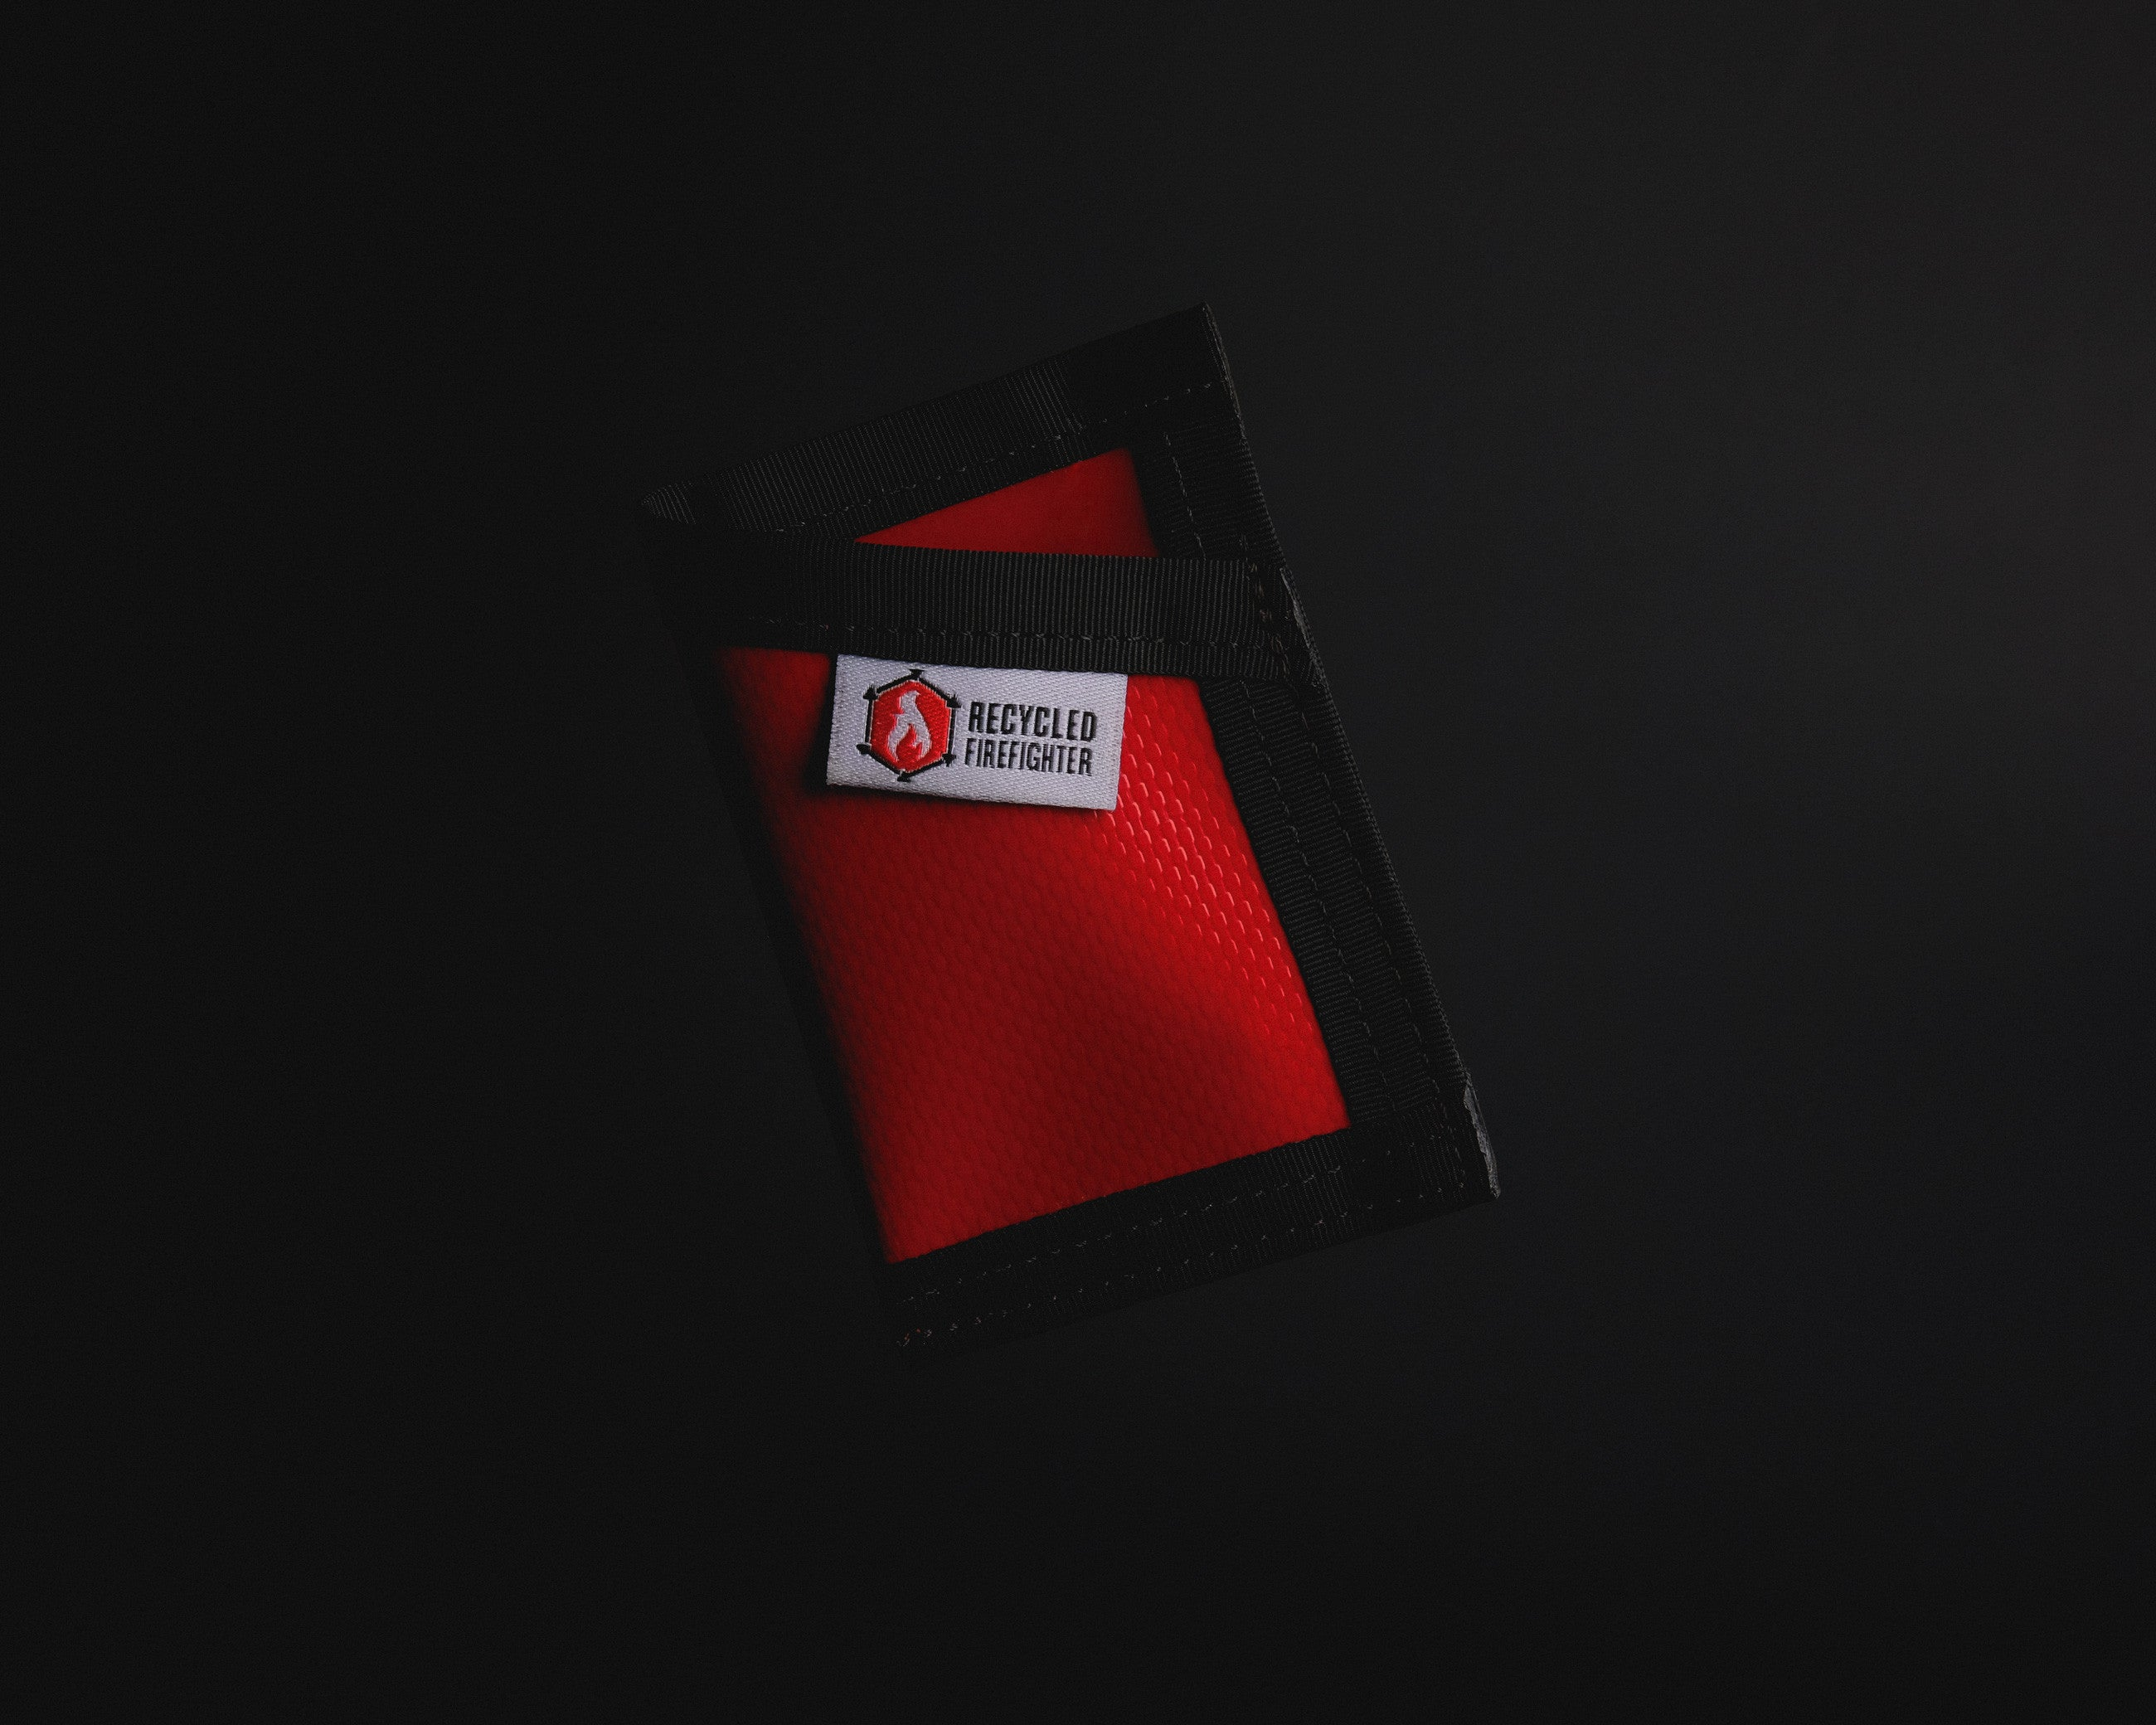 Recycled Firefighter Wallet